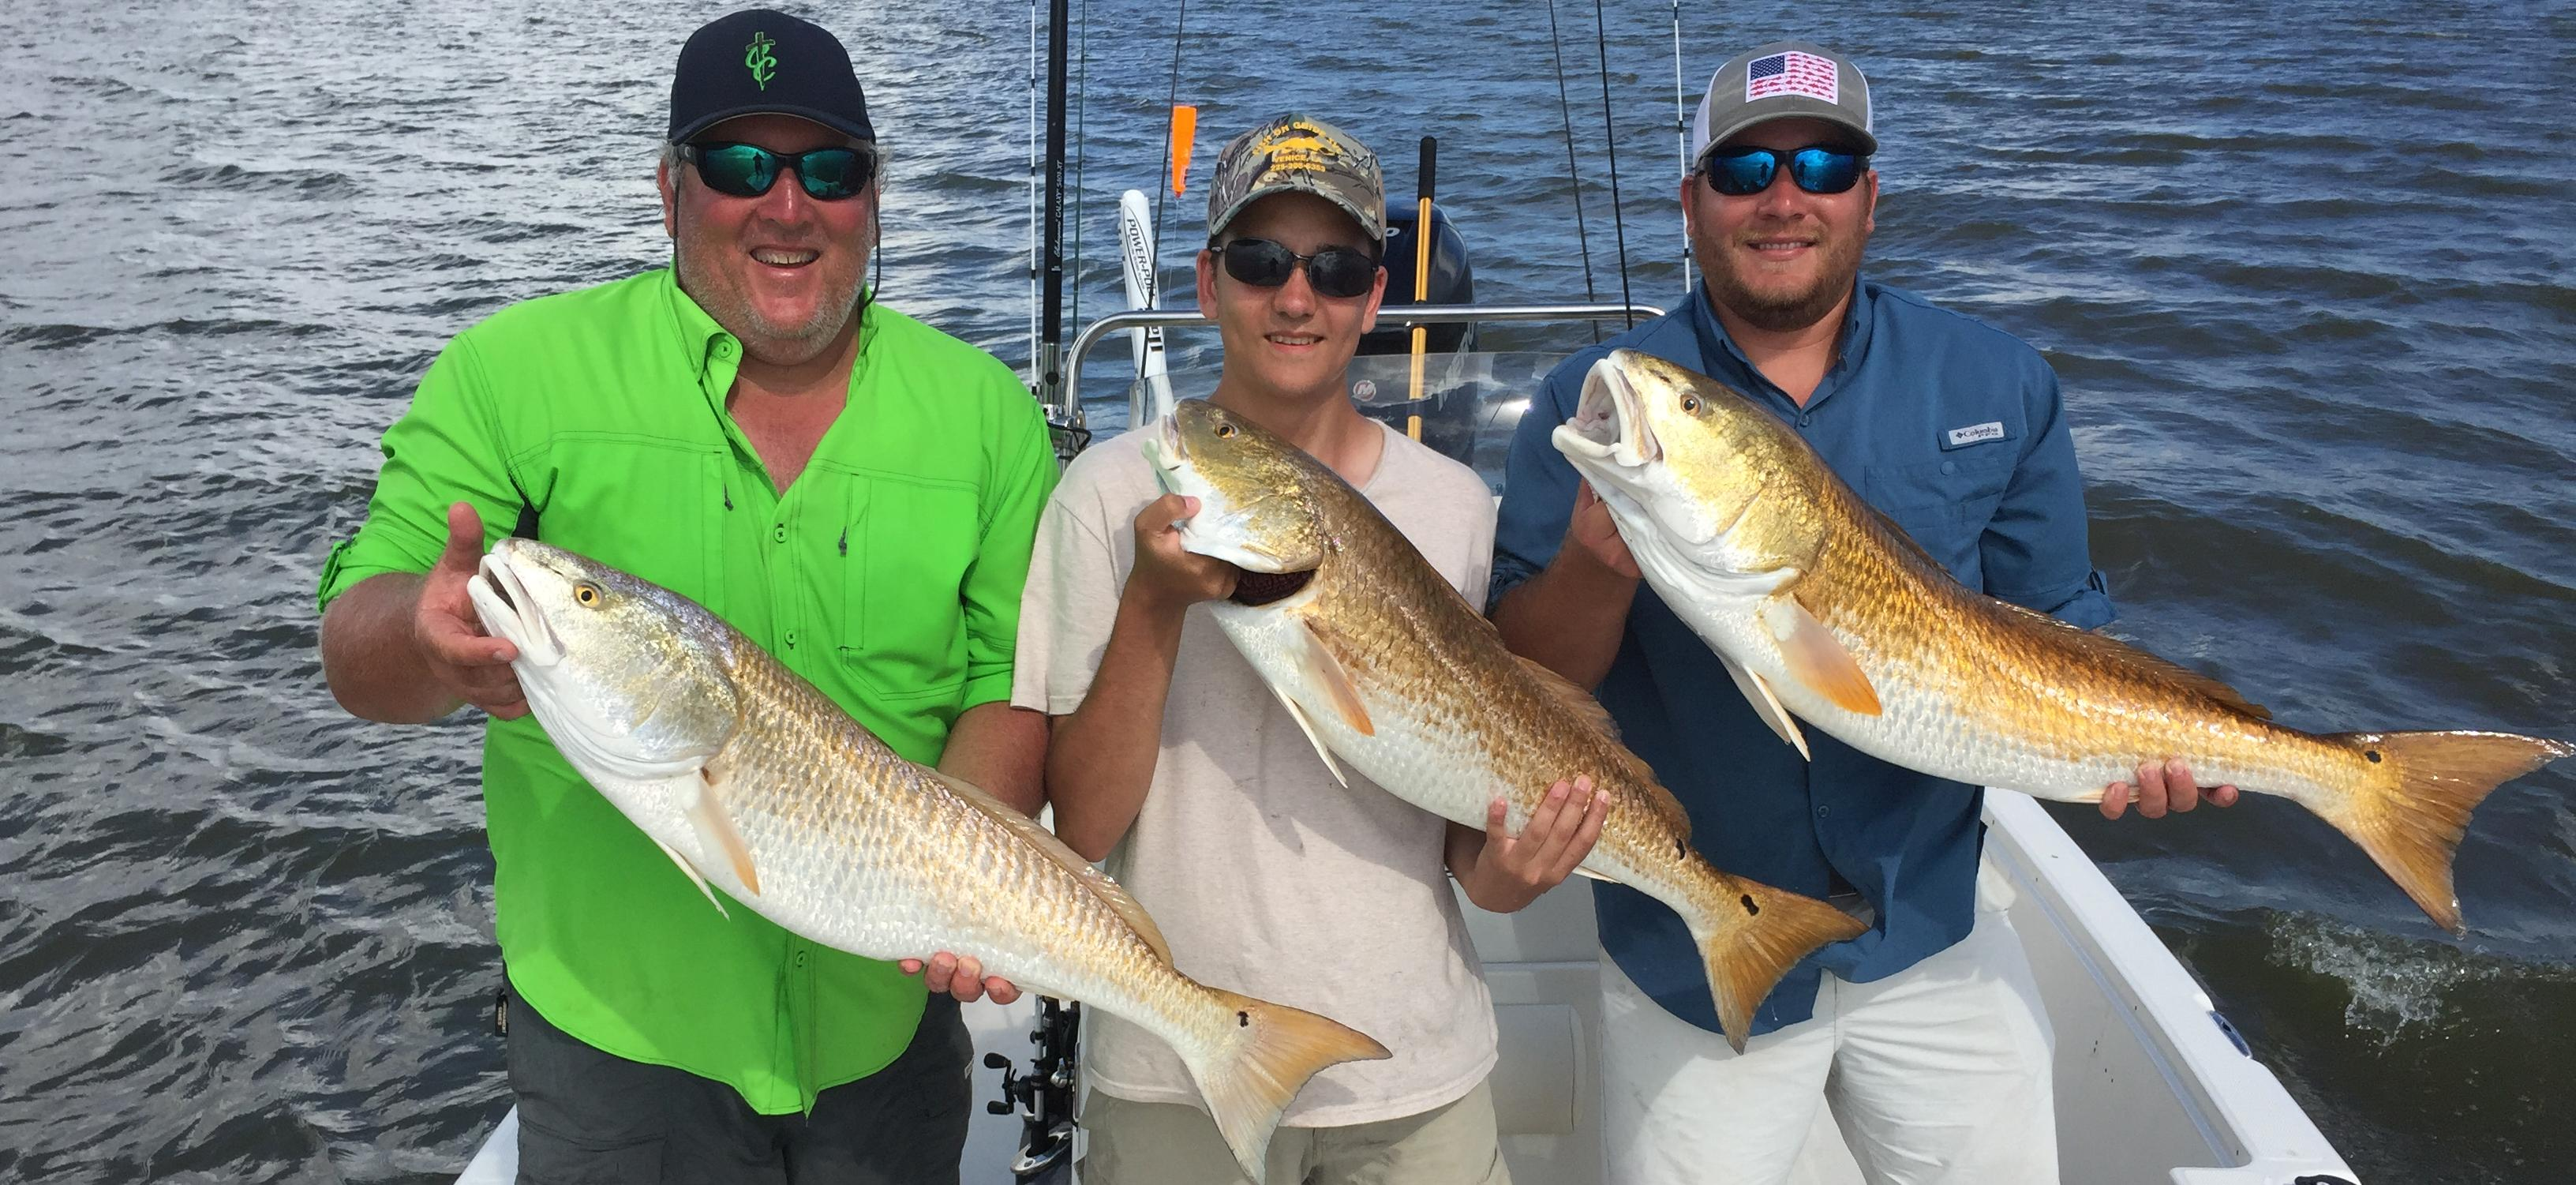 Venice la fishing charters and guides rod benders charters for La fishing charters